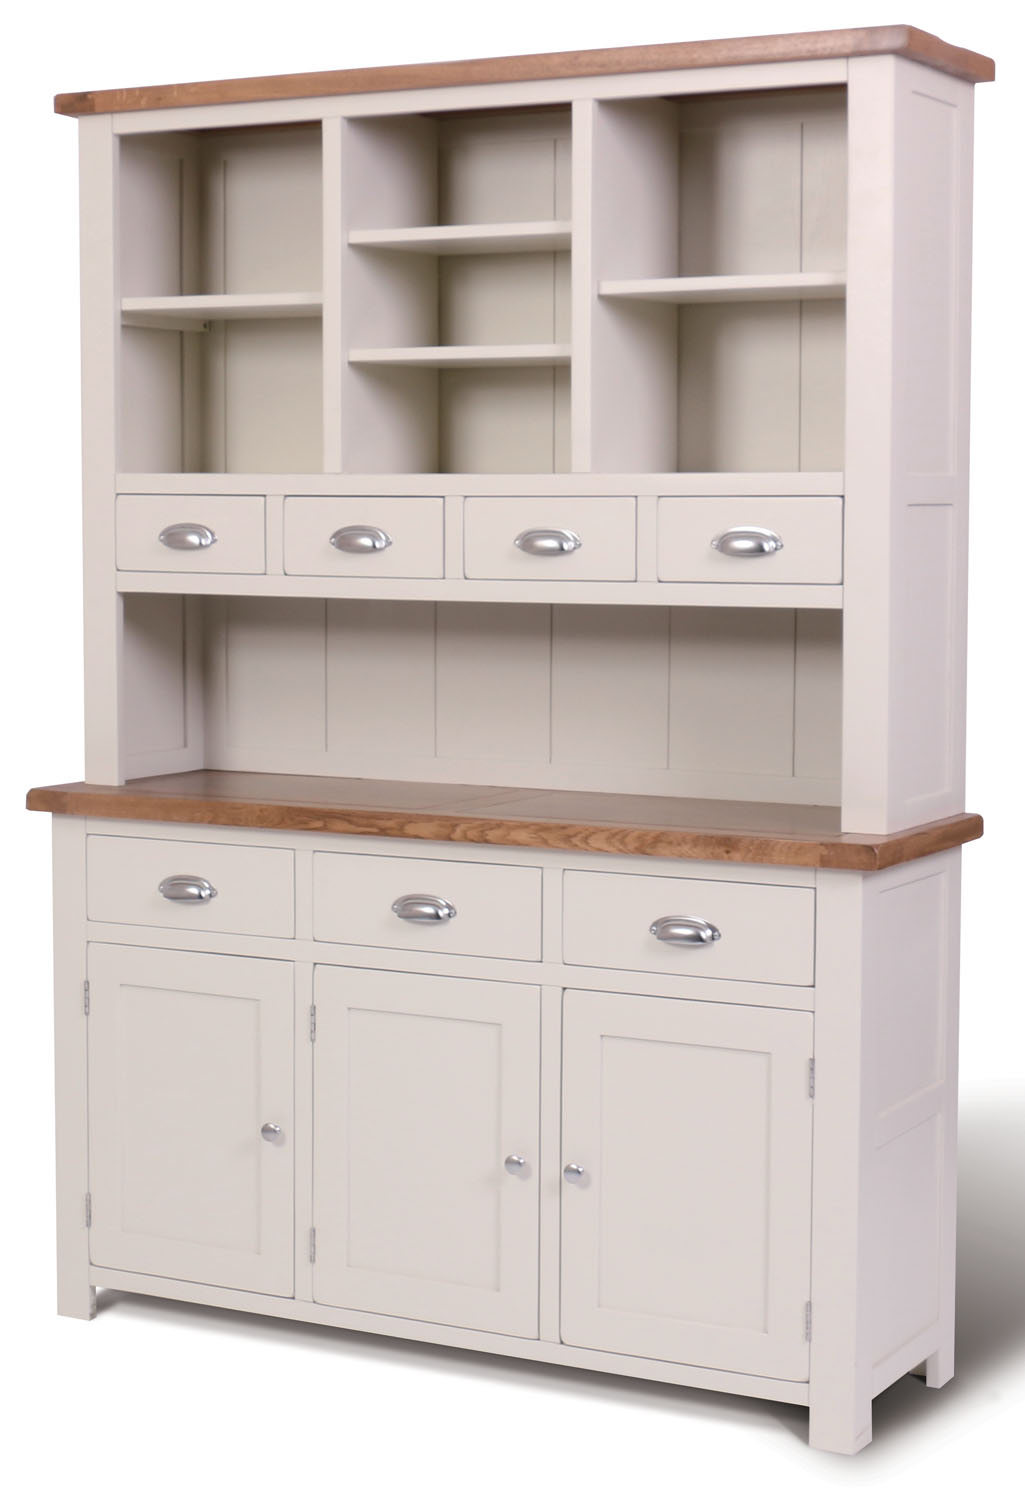 Ascot Painted Large Dresser - Sideboard with Top